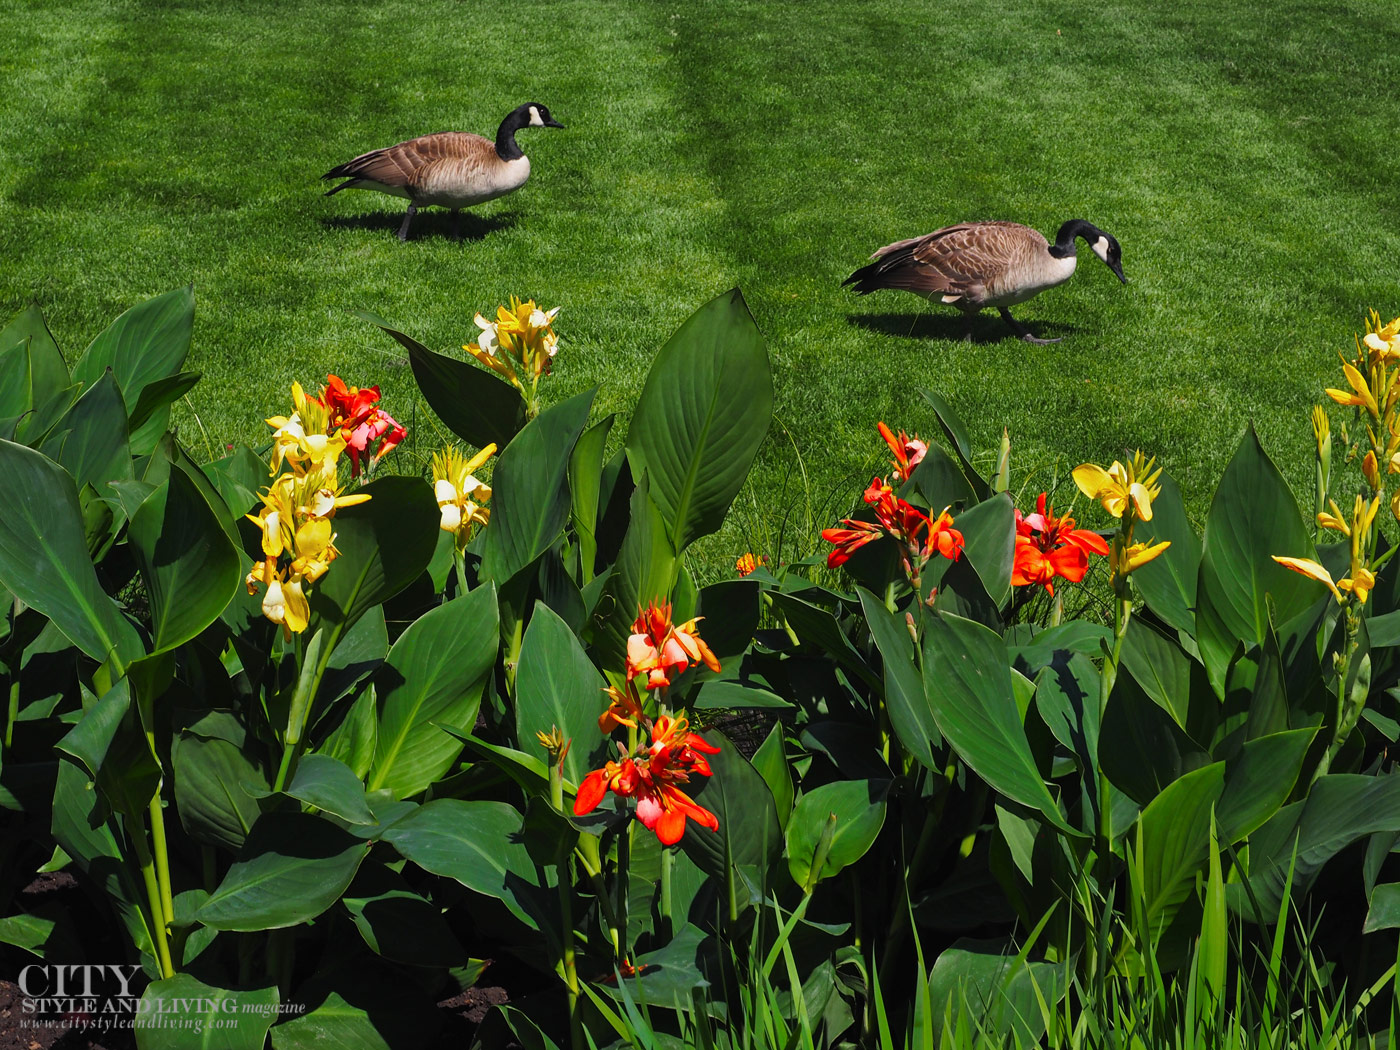 City Style and Living Spring 2021 Garden Troubleshooting